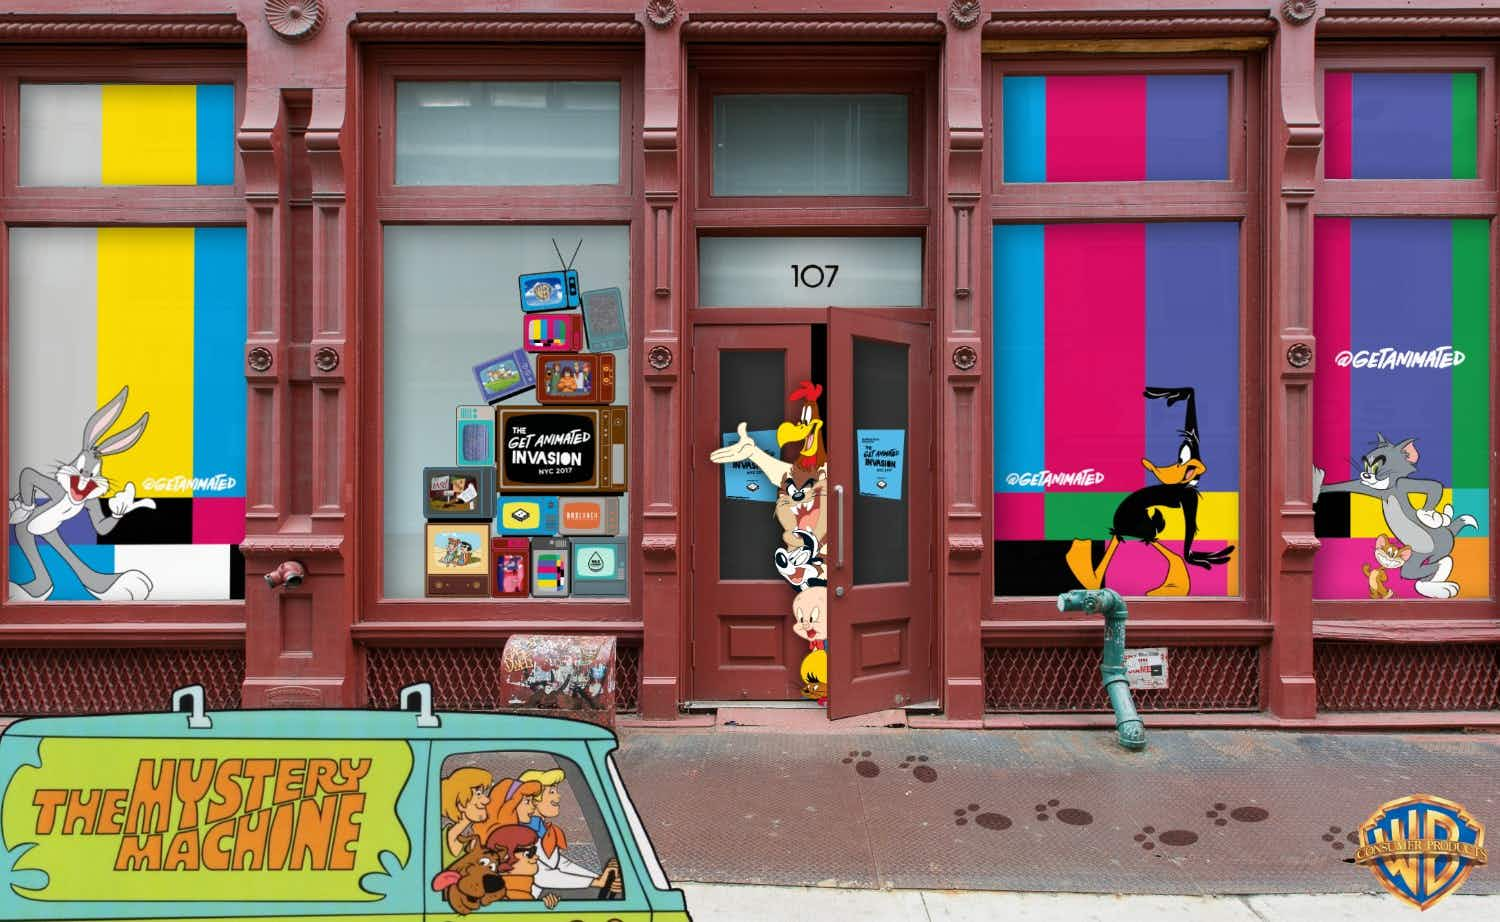 An incredible Warner Bros. pop-up is coming to New York this weekend